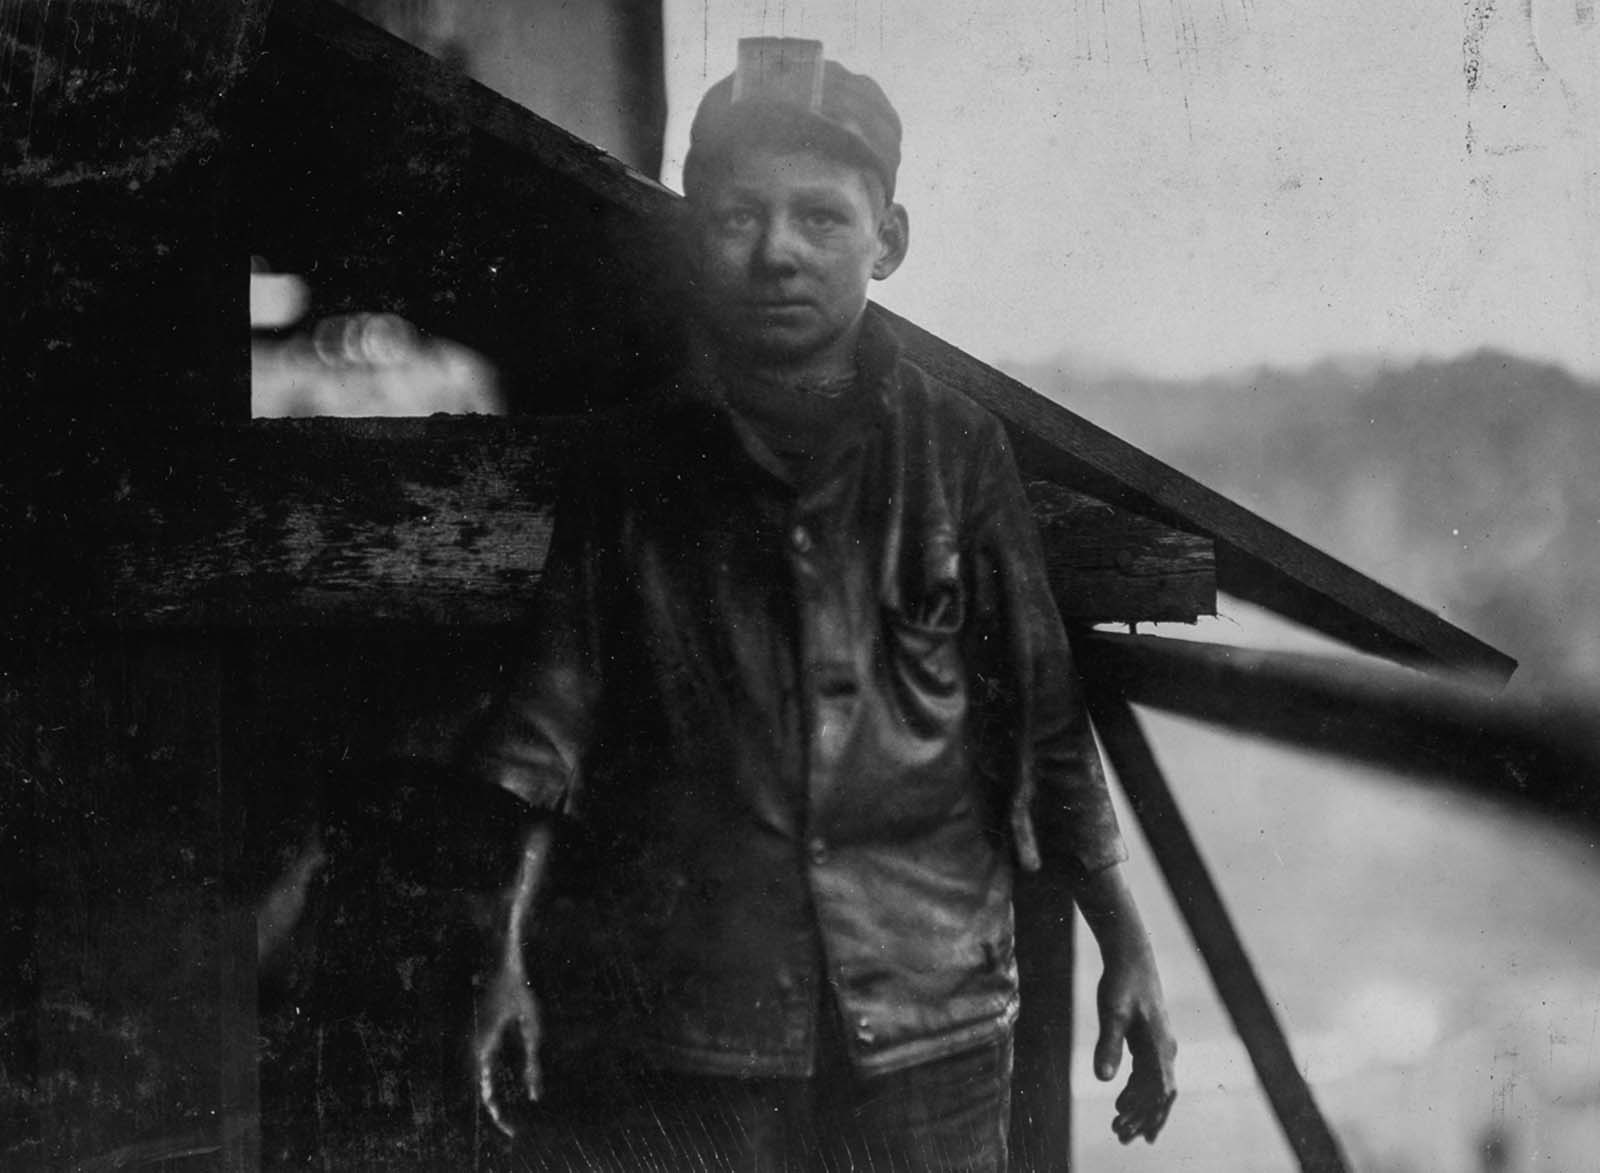 Shorpy Higginbotham, a worker at Bessie Mine in Alabama. 1910.